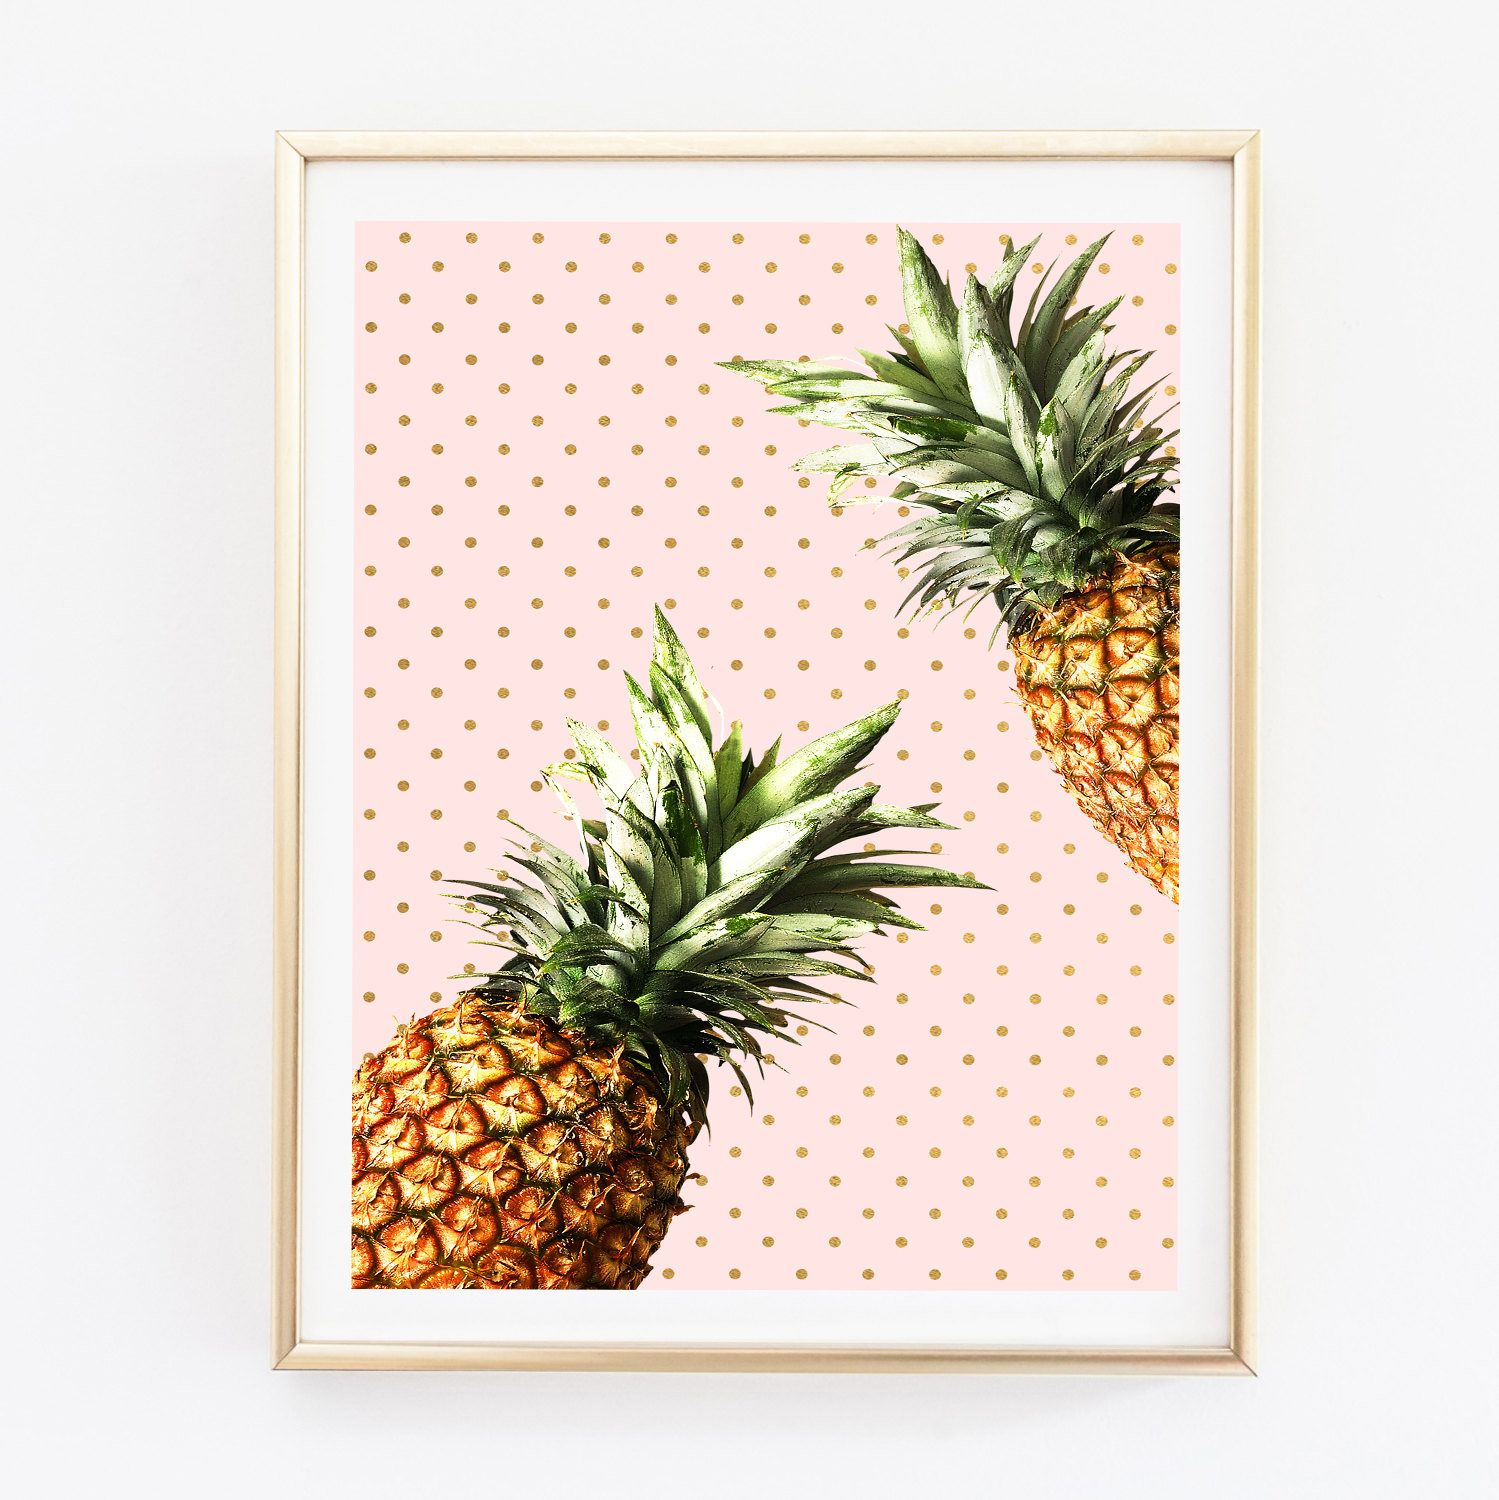 Pineapple Wall Art, Pineapple Print, Kitchen Wall Art, Tropical Fruit,  Tropical Decor, Modern Photography, Minimal Art, Pink Gold Printable